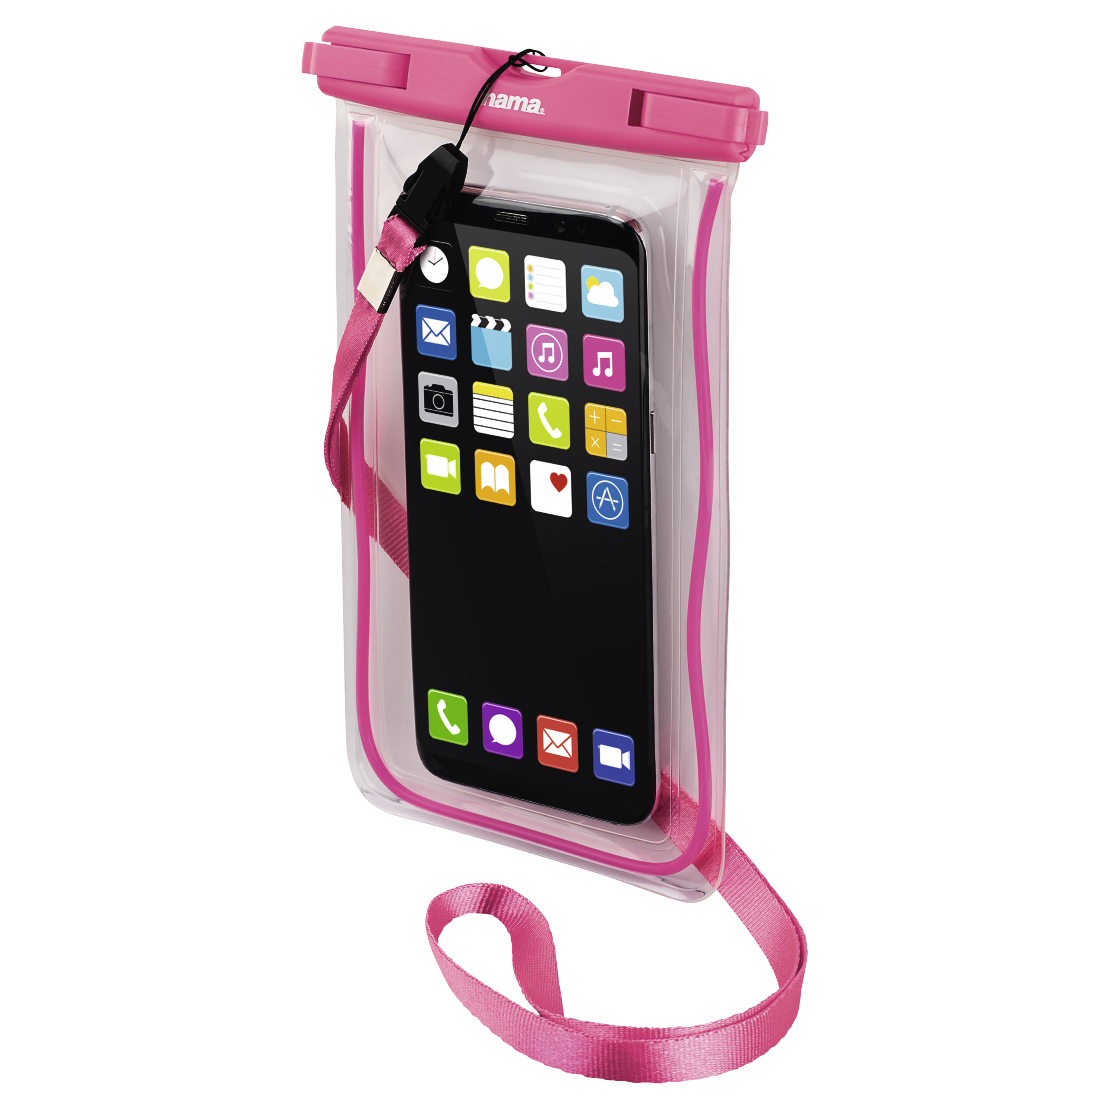 abx3 High-Res Image 3 - Hama, Playa Outdoor Bag for Smartphones, Size XXL, pink